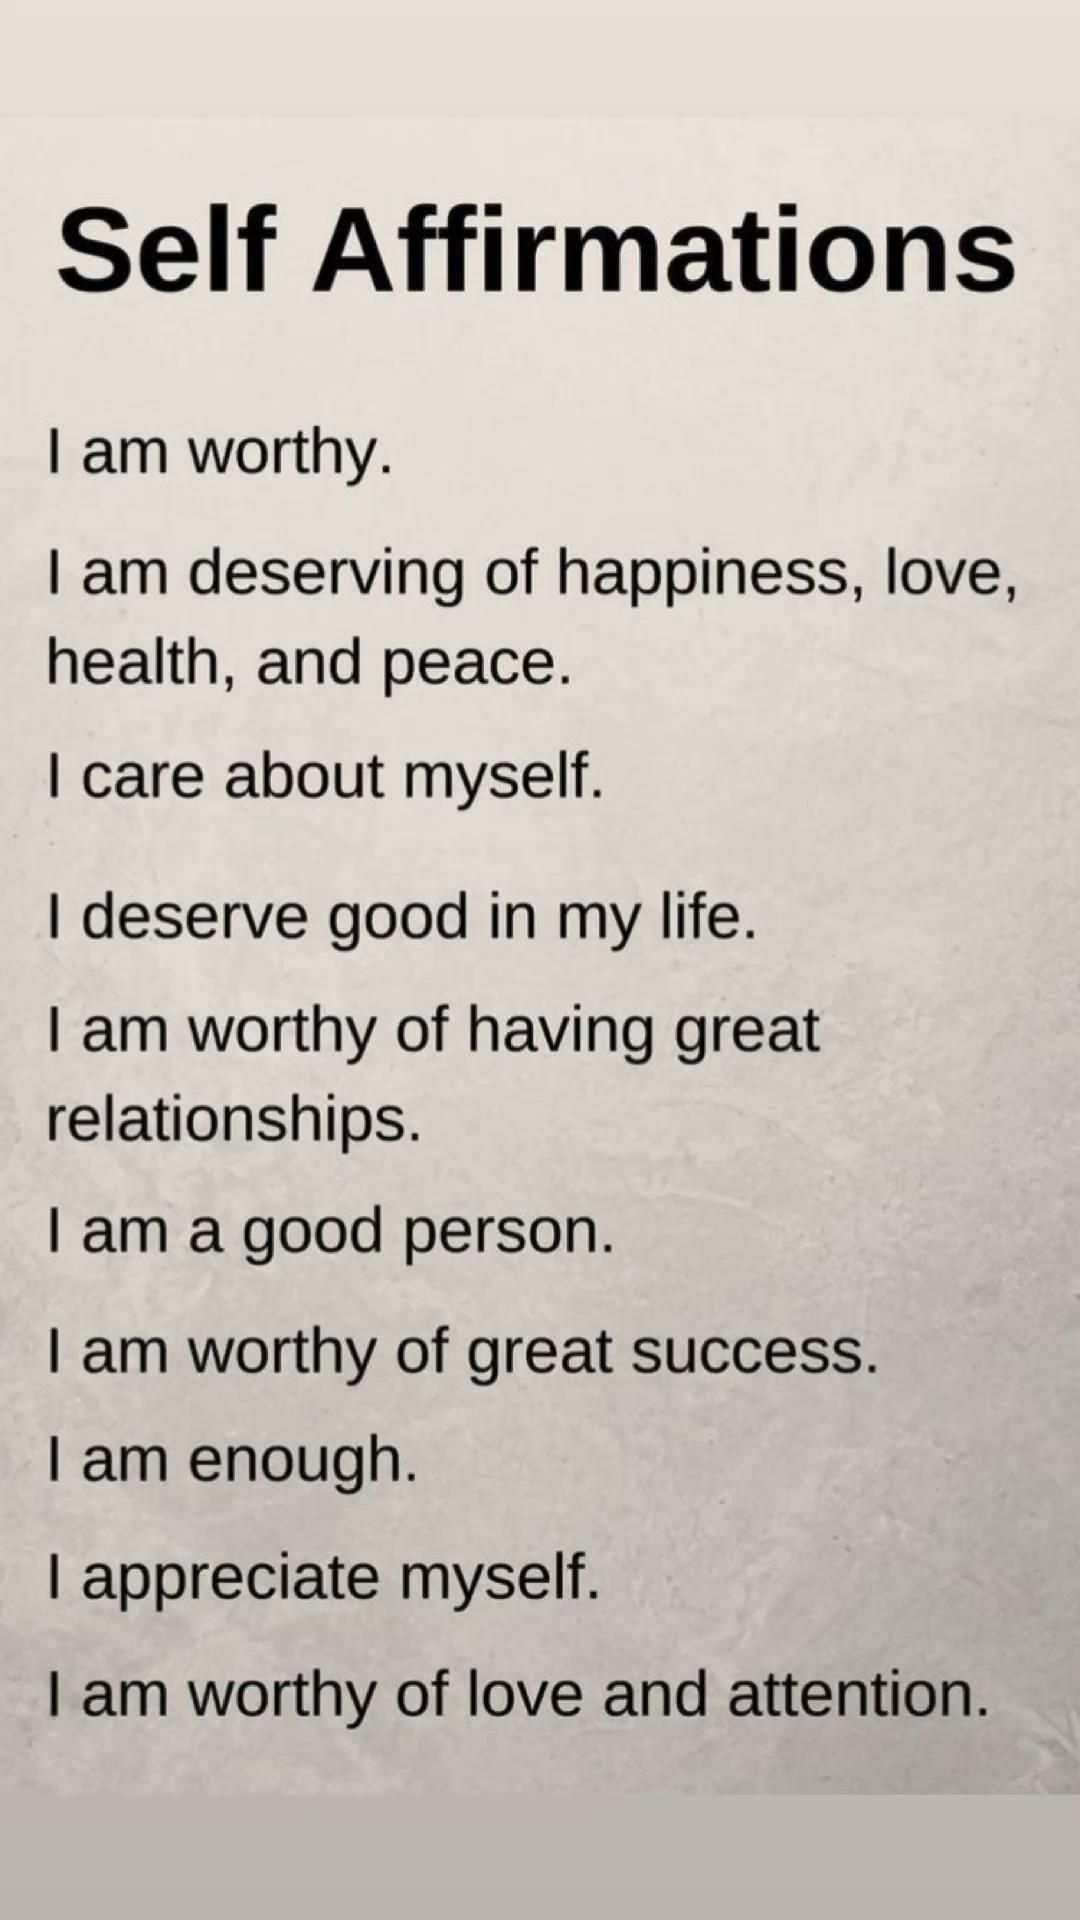 #soulfood #selfaffirmations #thoughts #positivity